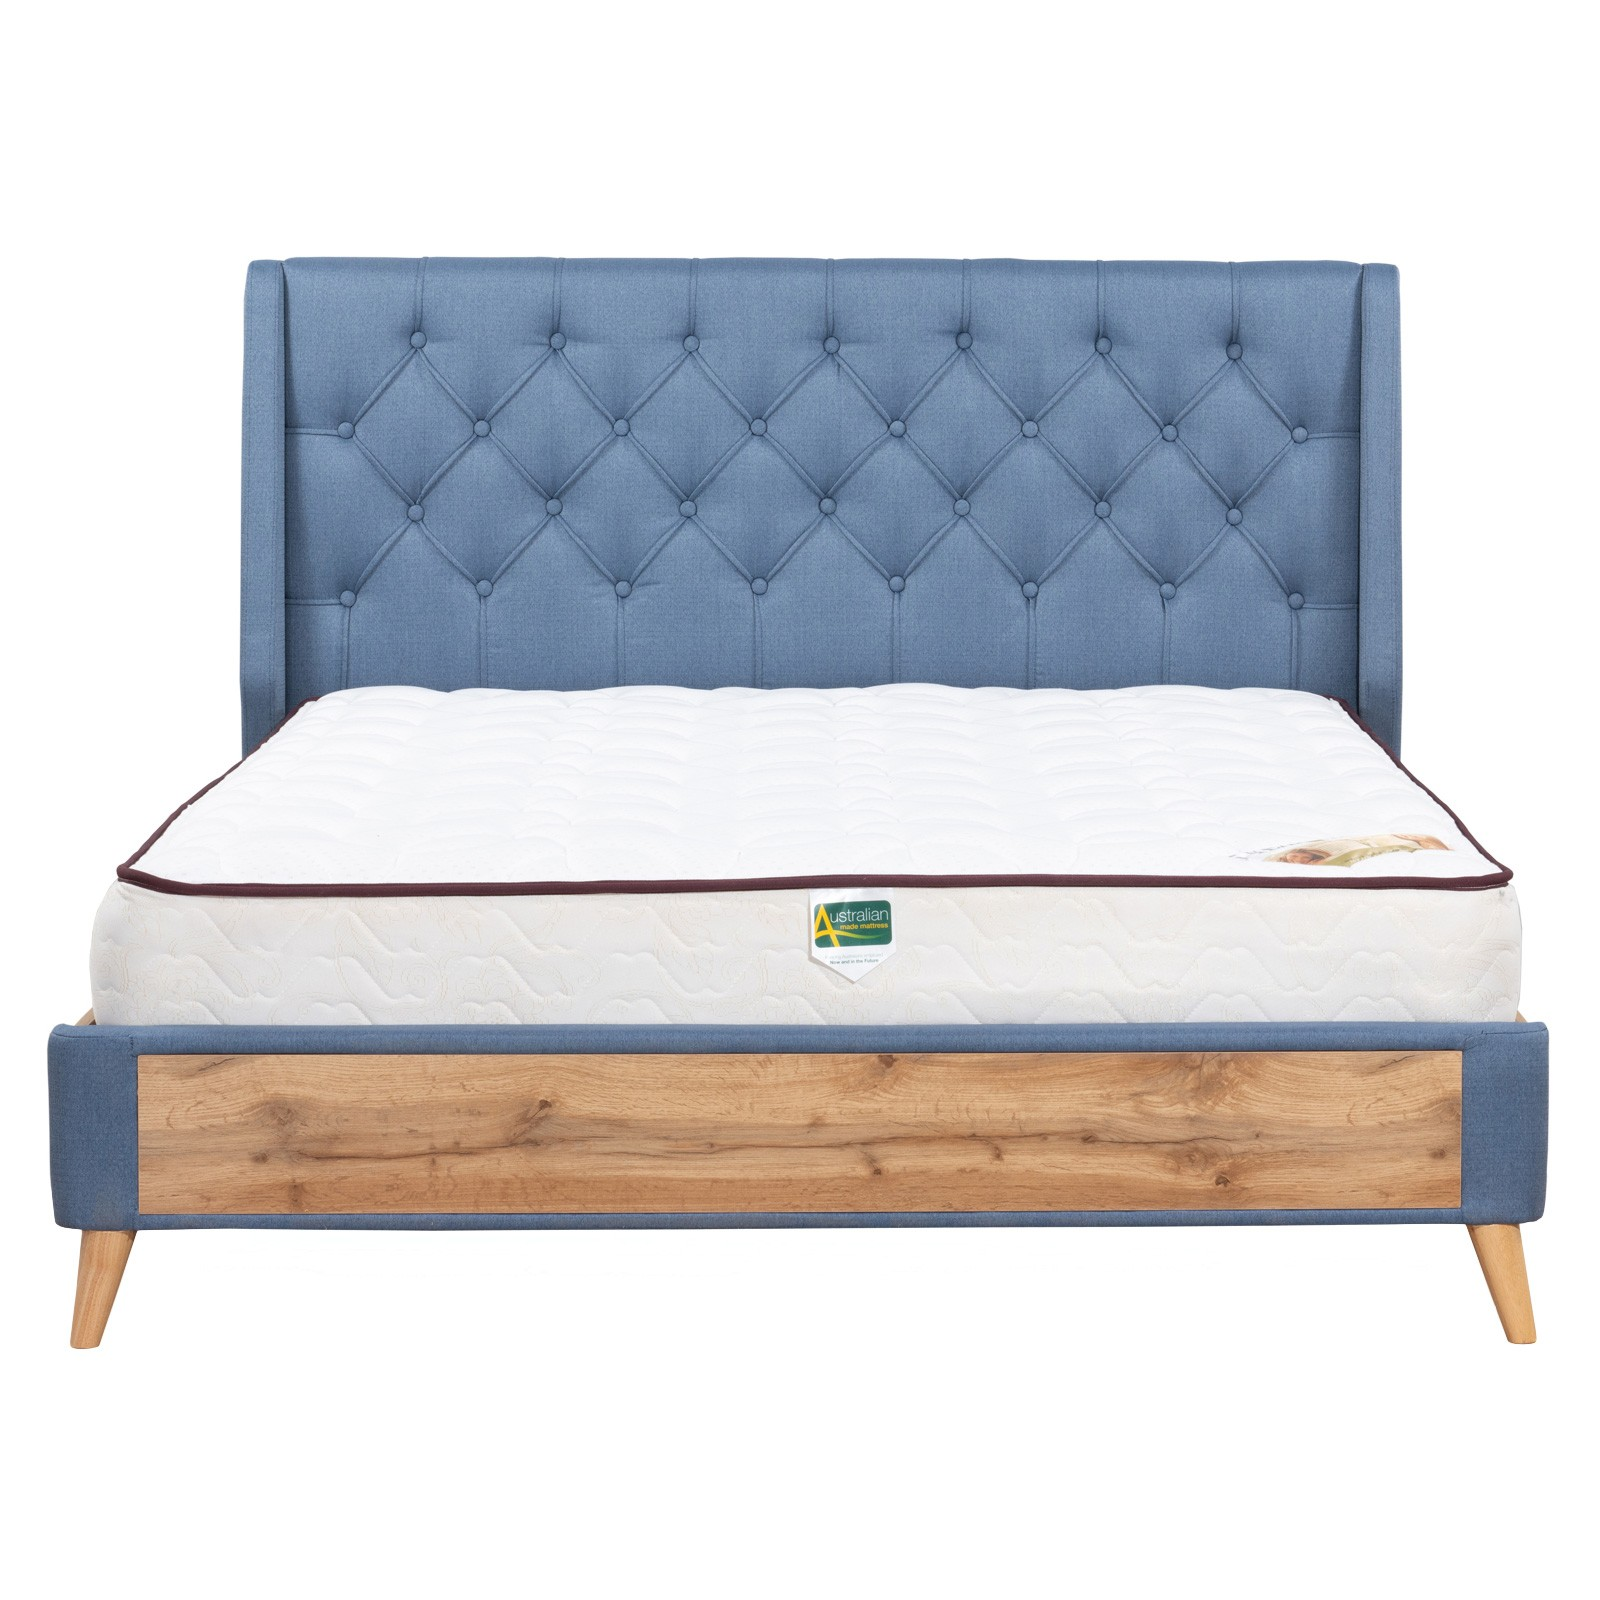 Charlie Fabric & Wood Platform Bed, Queen